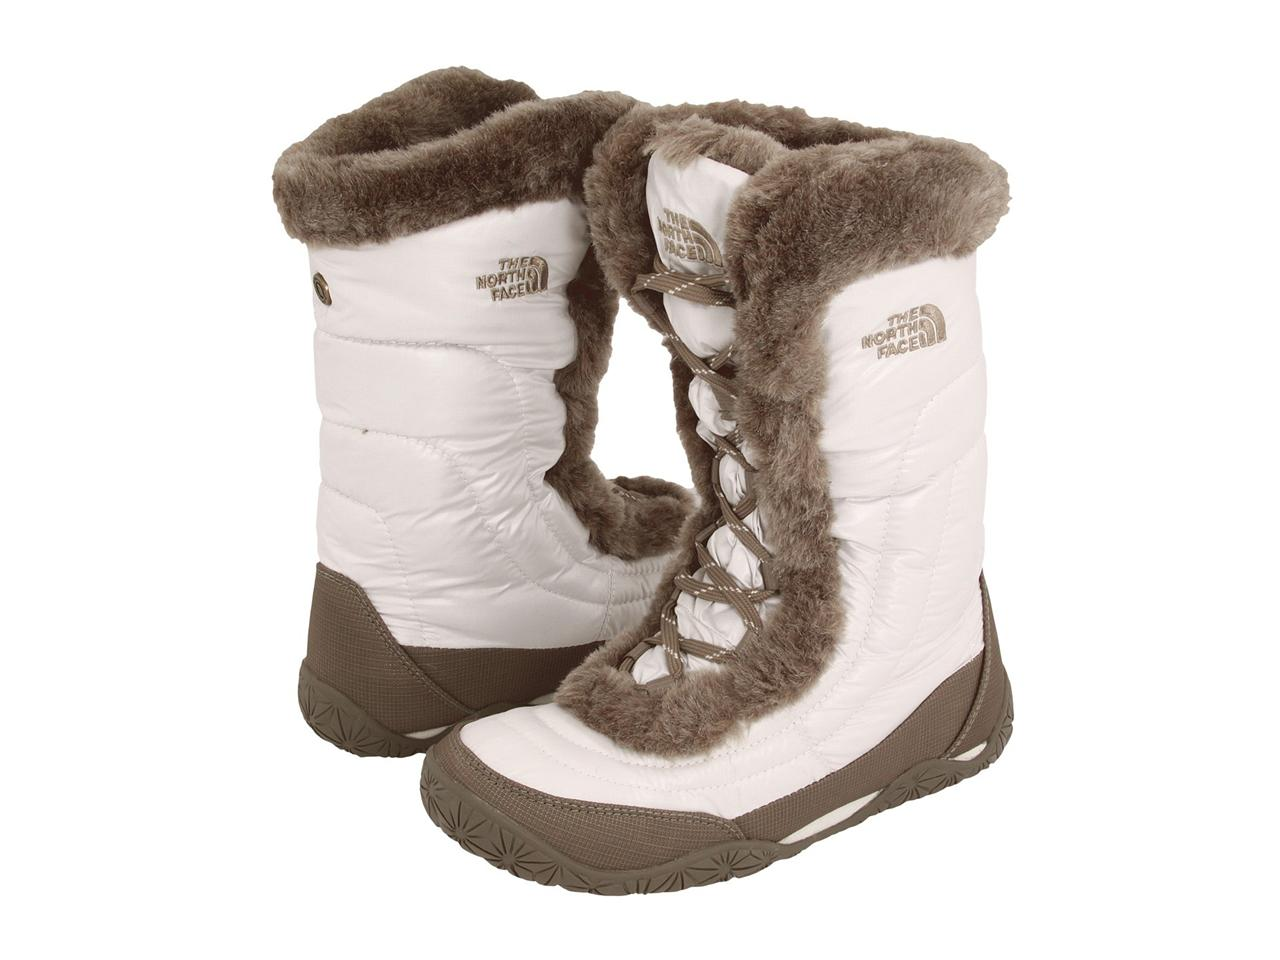 213a86c2a North Face Nuptse Fur Iv Women's Winter Boots | Santa Barbara ...